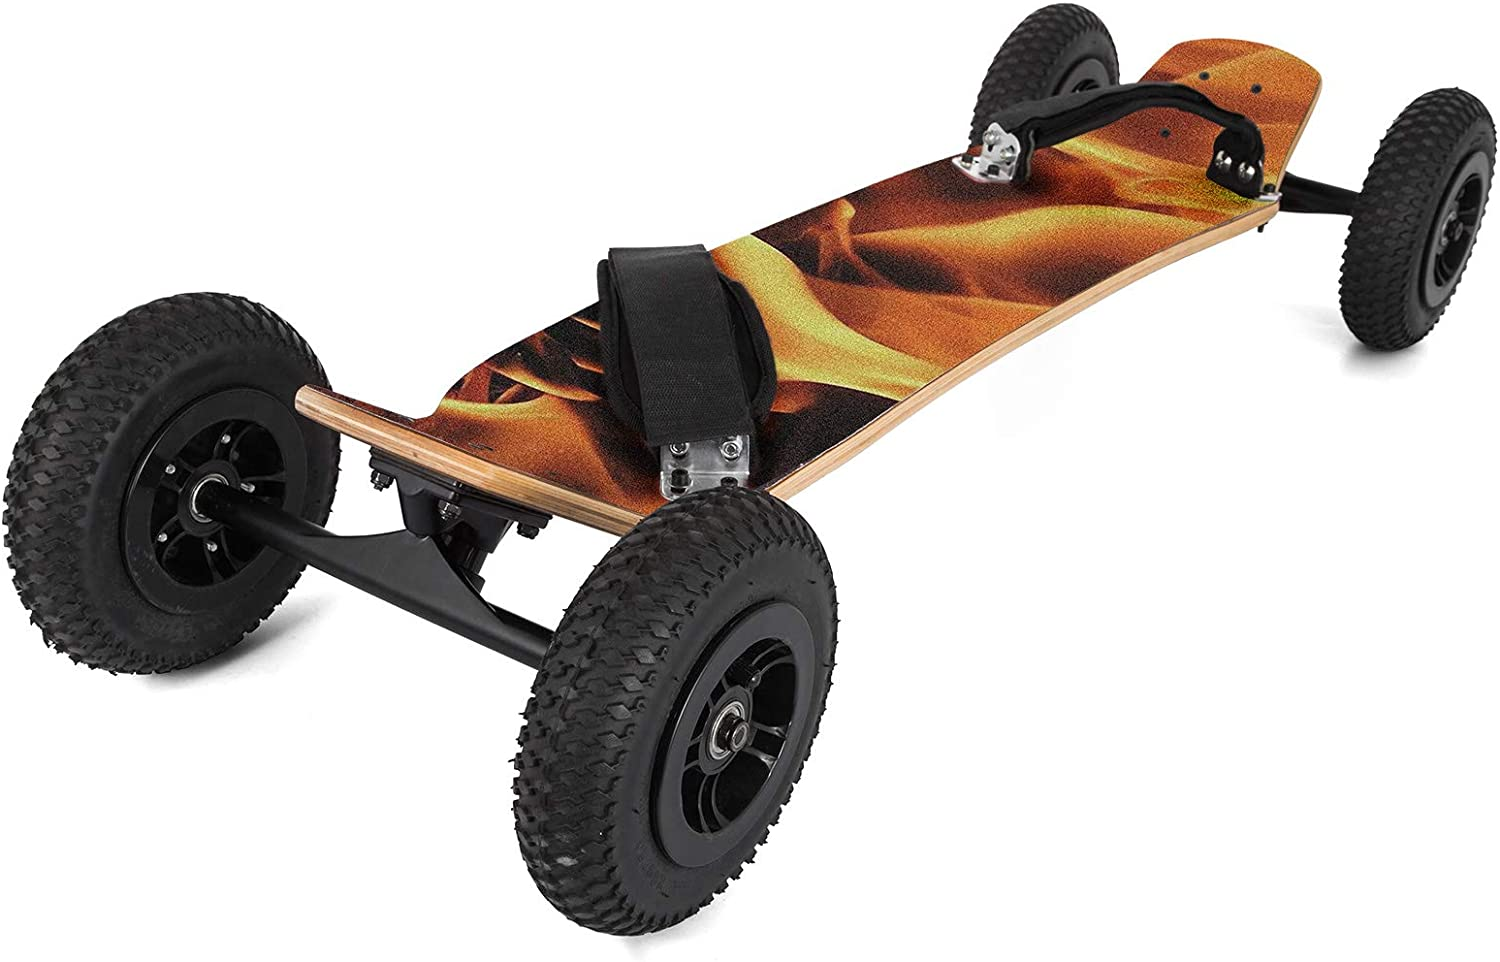 Happybuy Mountainboard 39 inches Cross Country Skateboard All Terrain Skateboard Longboard with Bindings for Cruising and Downhill